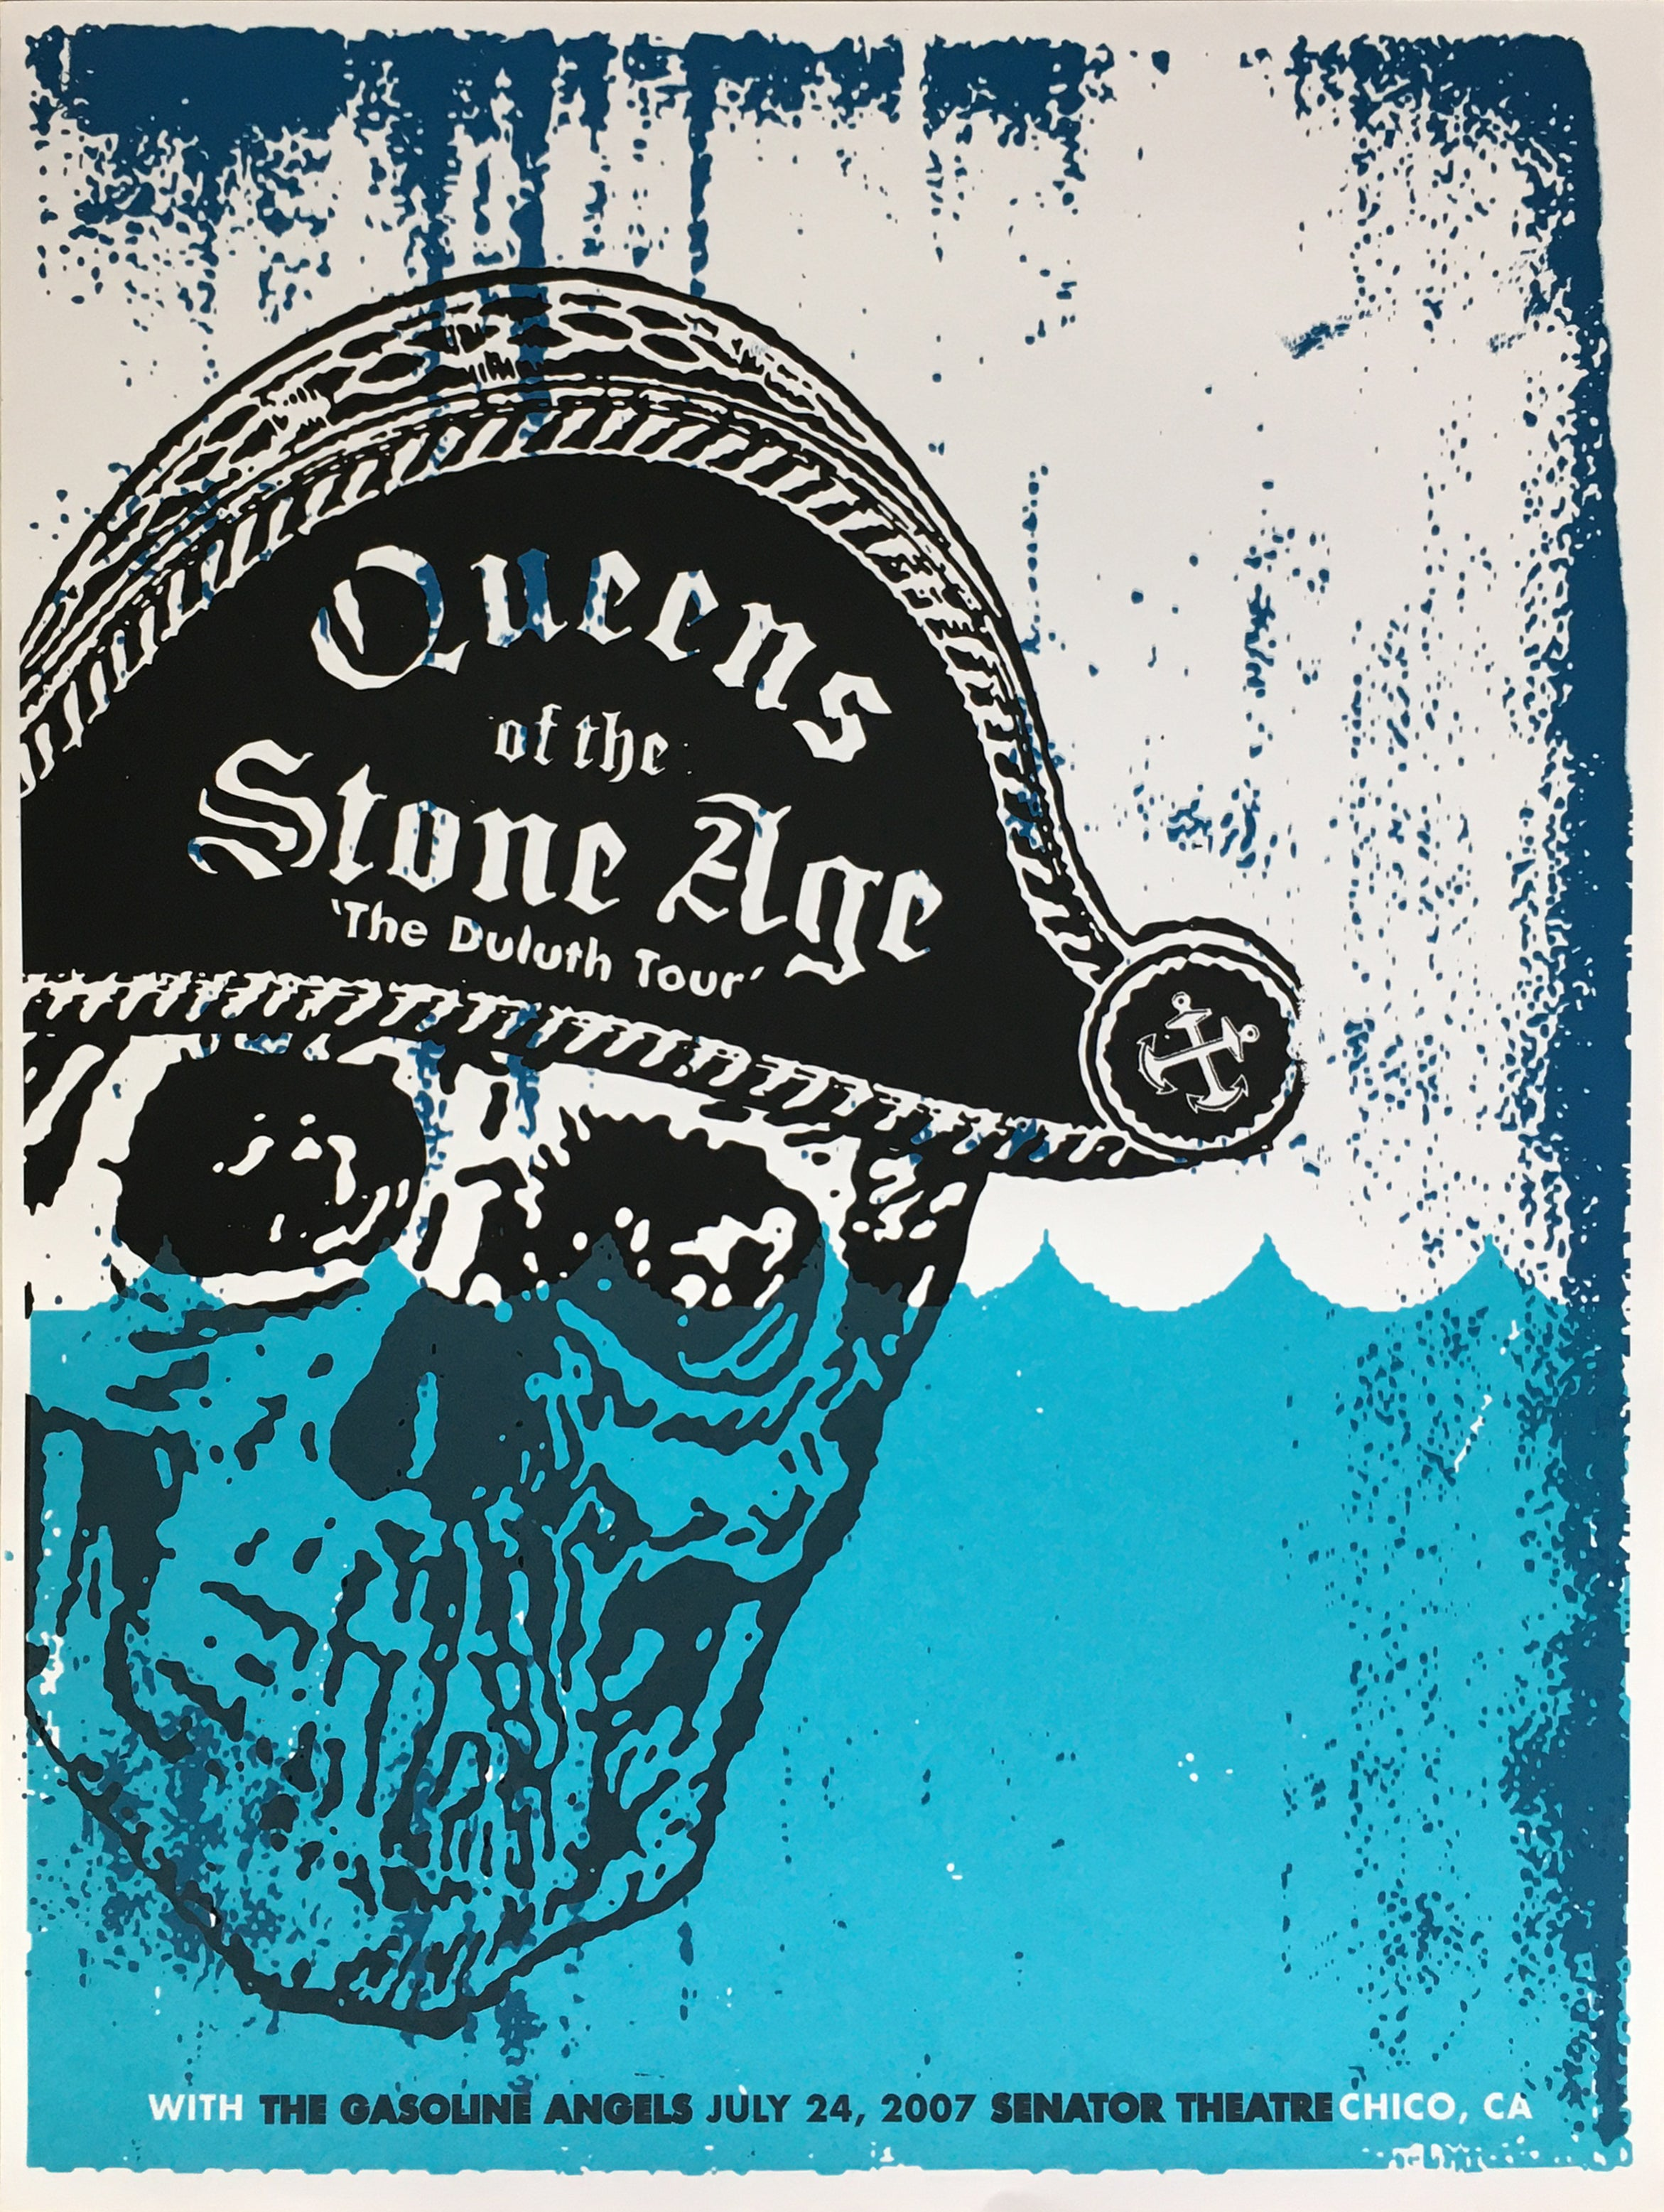 QUEENS OF THE STONE AGE - Chico 2007 by Lil Tuffy